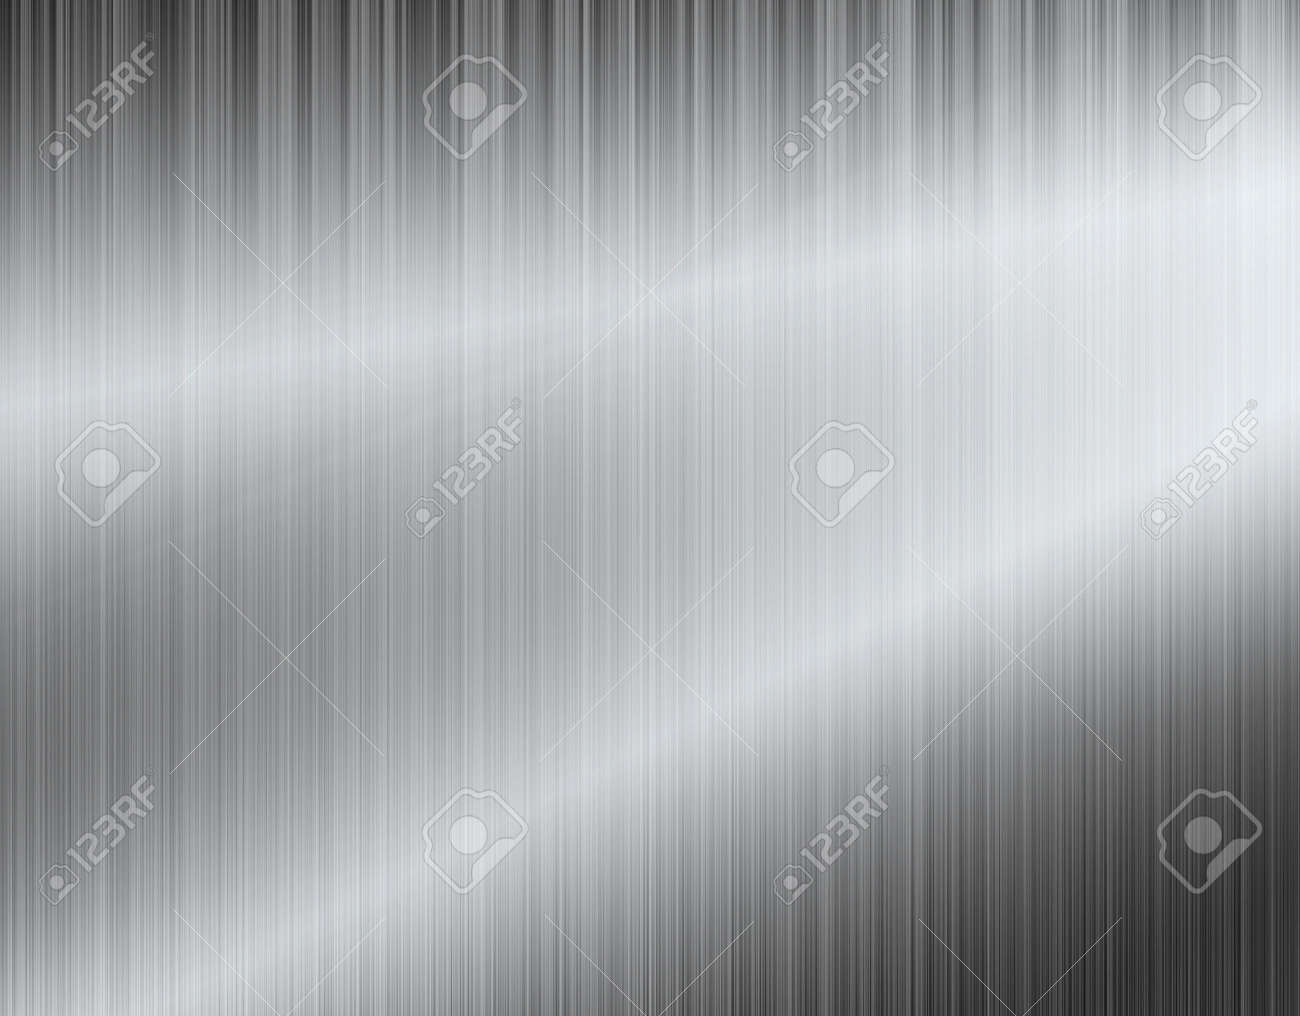 Metal background or texture of brushed aluminum plate - 143221484